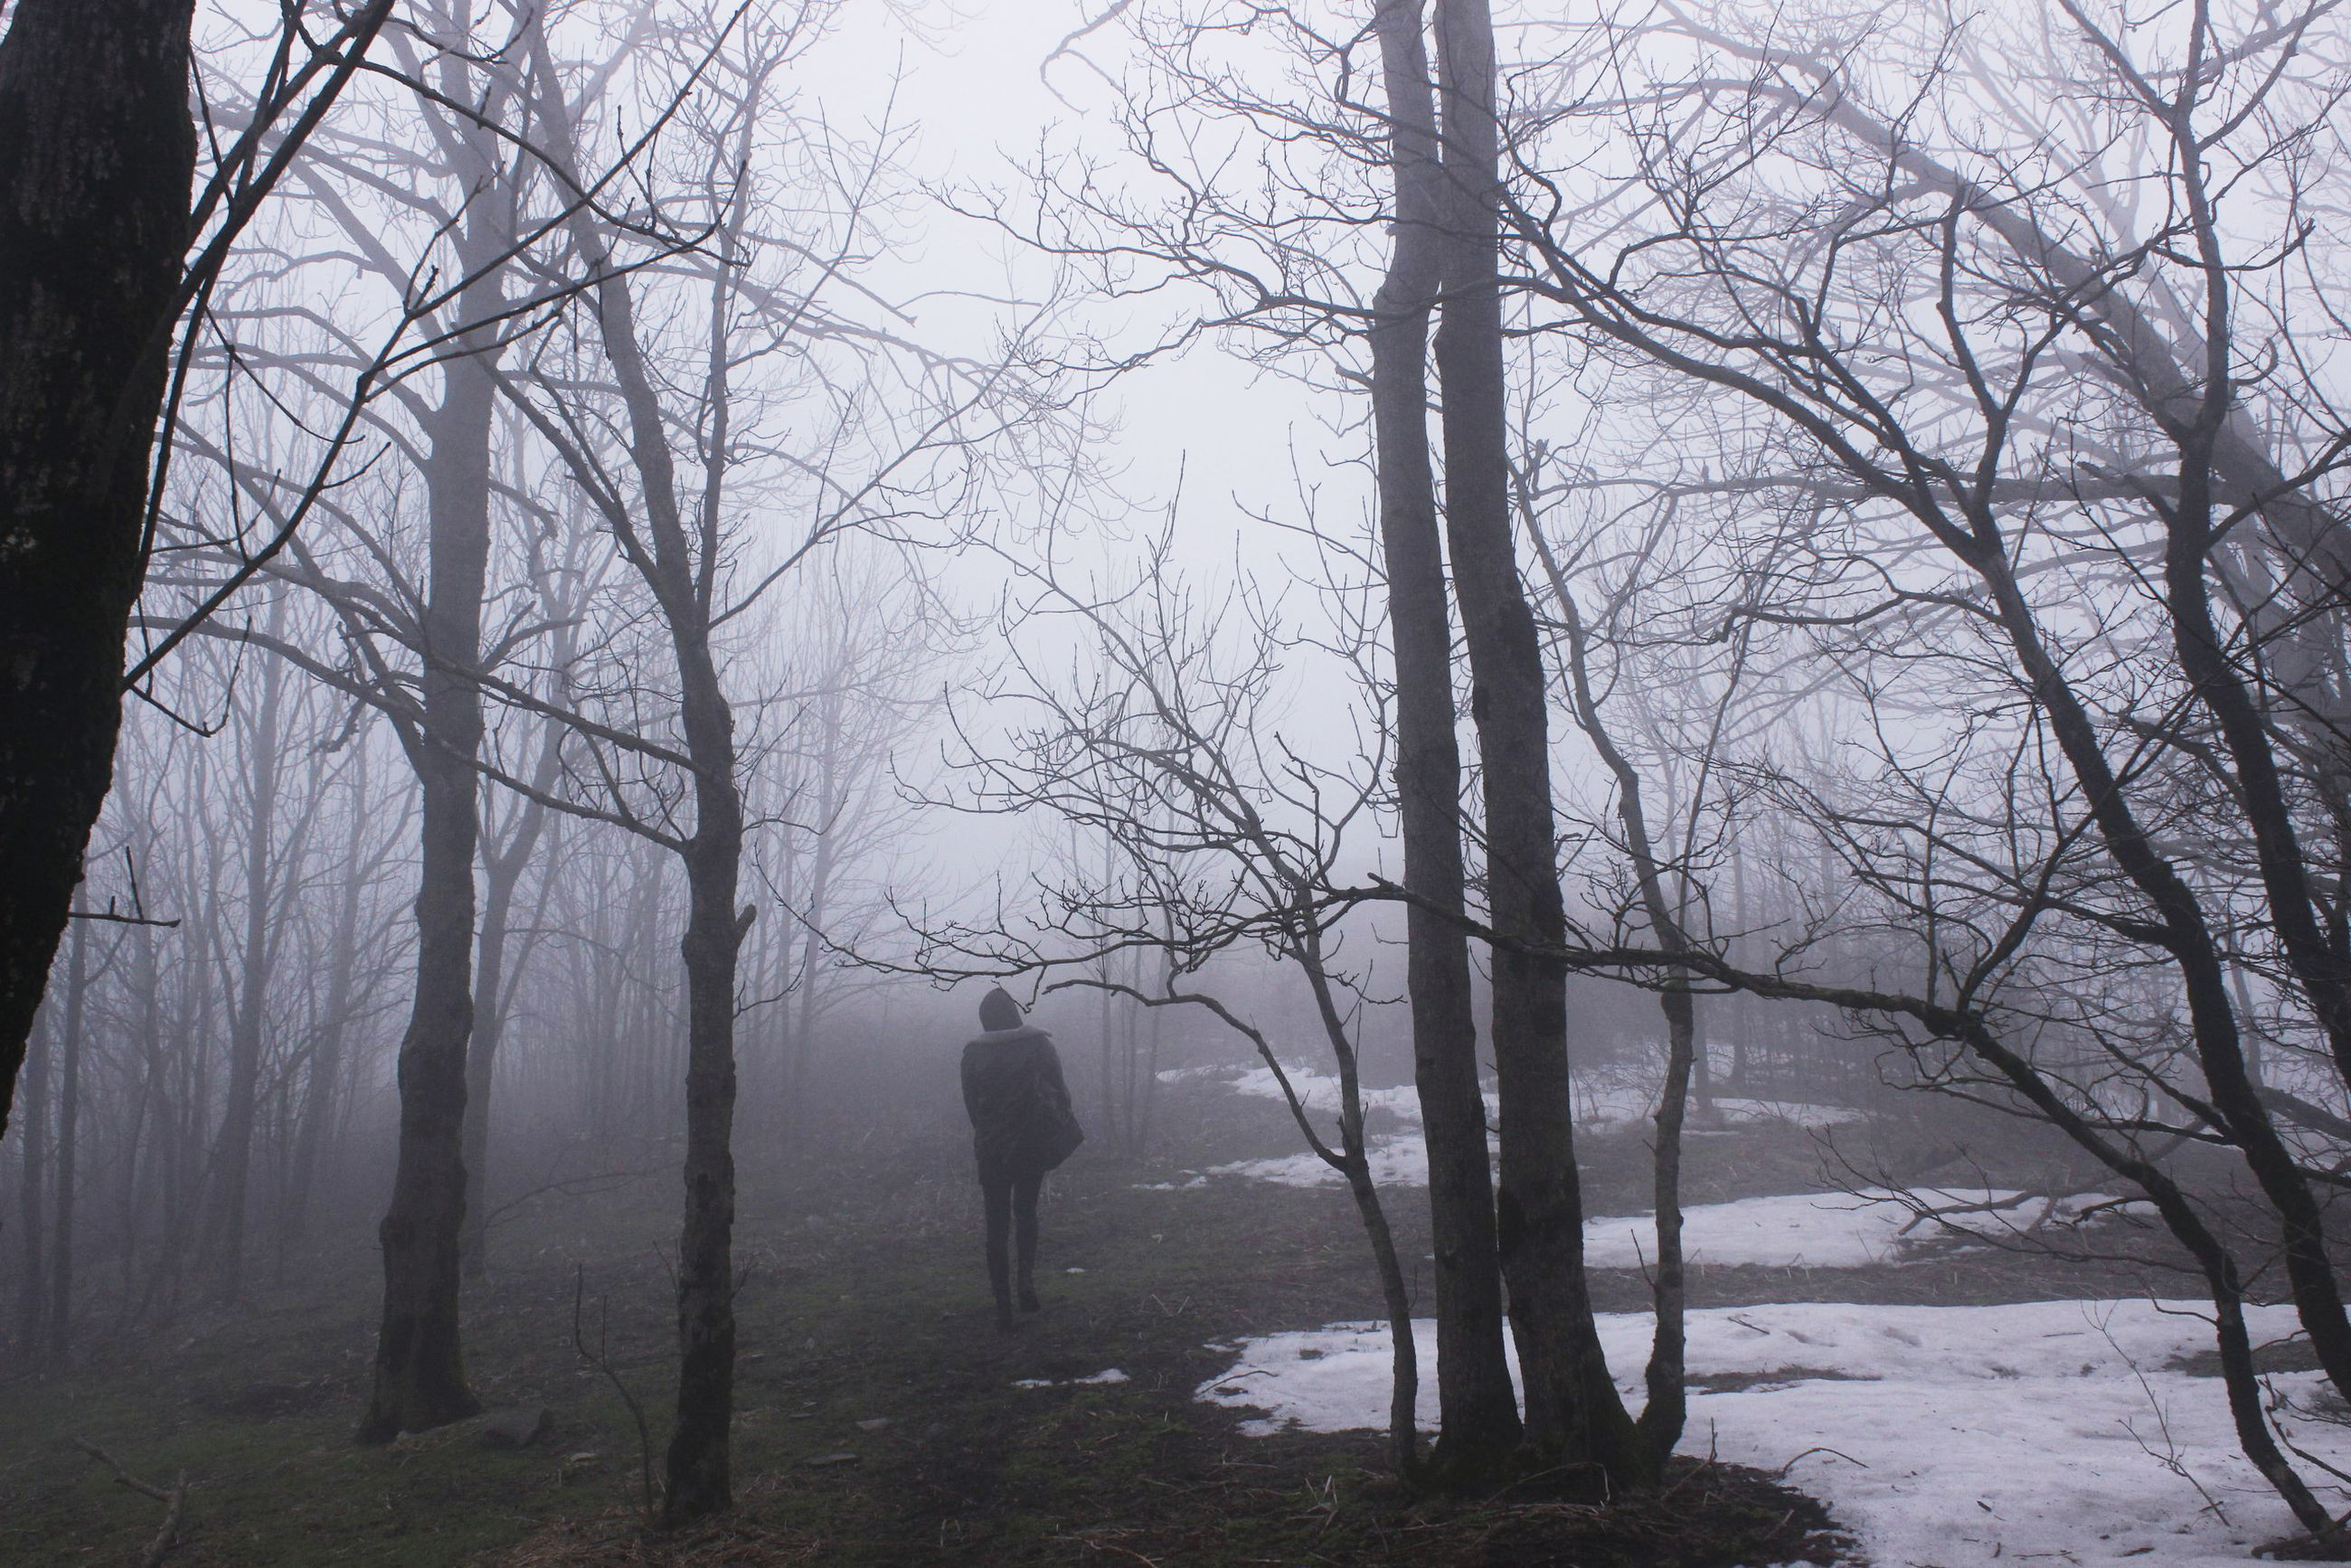 bare tree, tree, tree trunk, branch, tranquility, tranquil scene, silhouette, nature, scenics, beauty in nature, landscape, sky, non-urban scene, solitude, outdoors, full length, idyllic, remote, fog, day